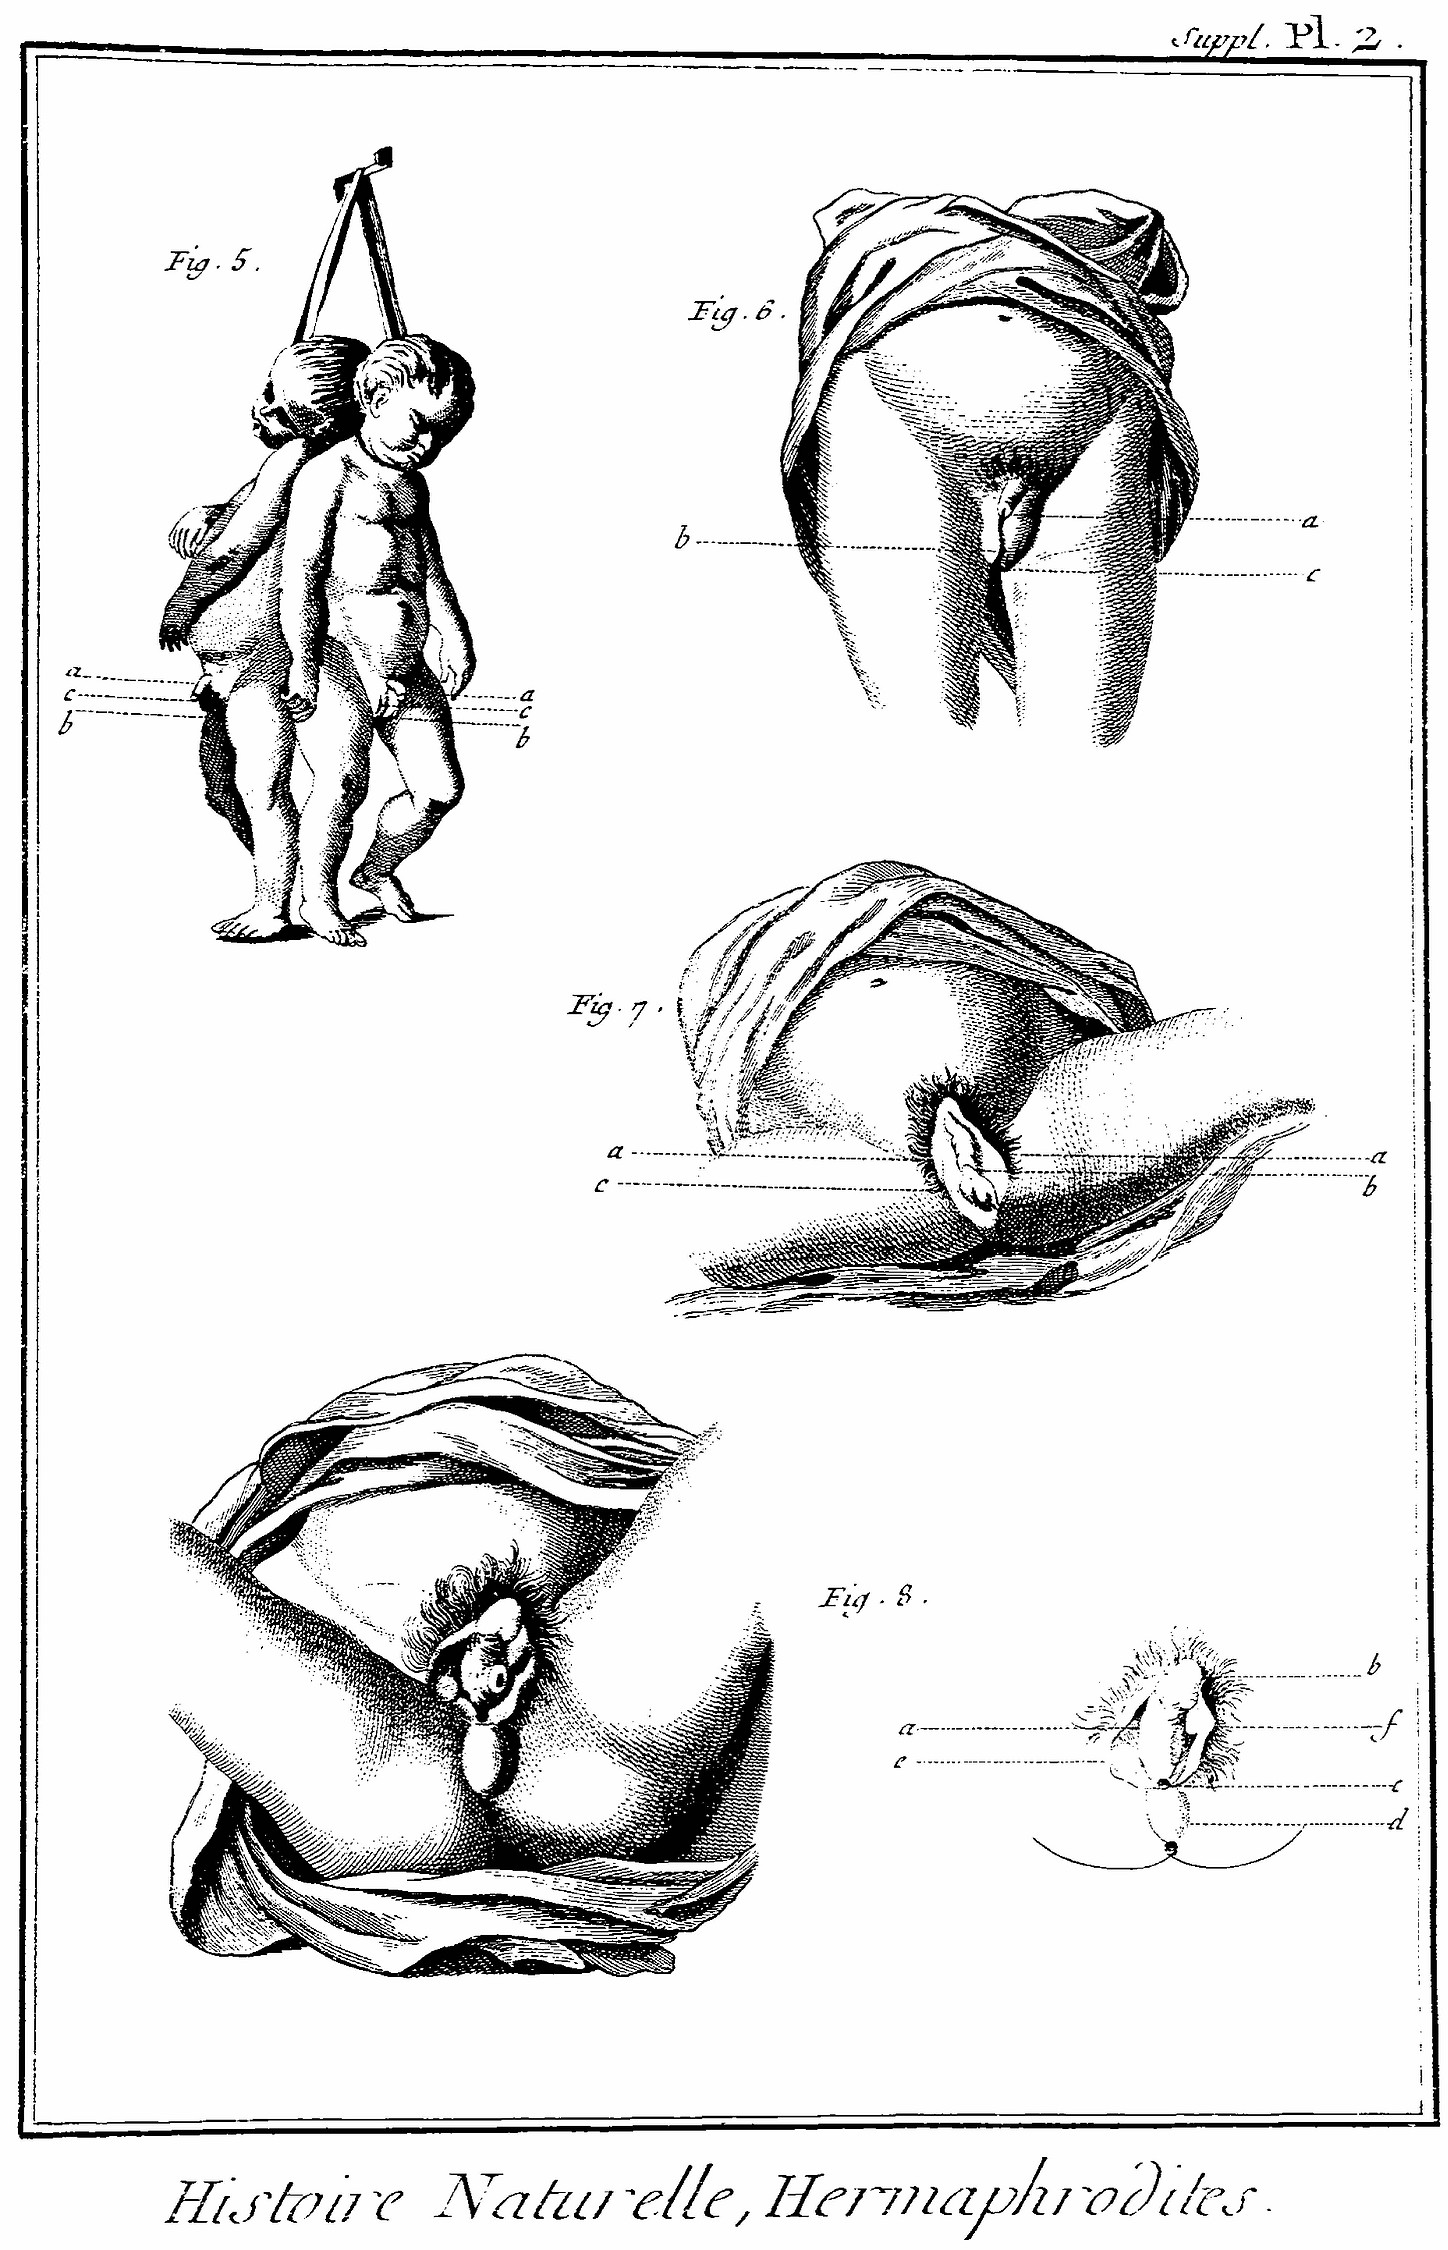 Medical Anatomical Chart of Intersex Individuals -- 19th Century